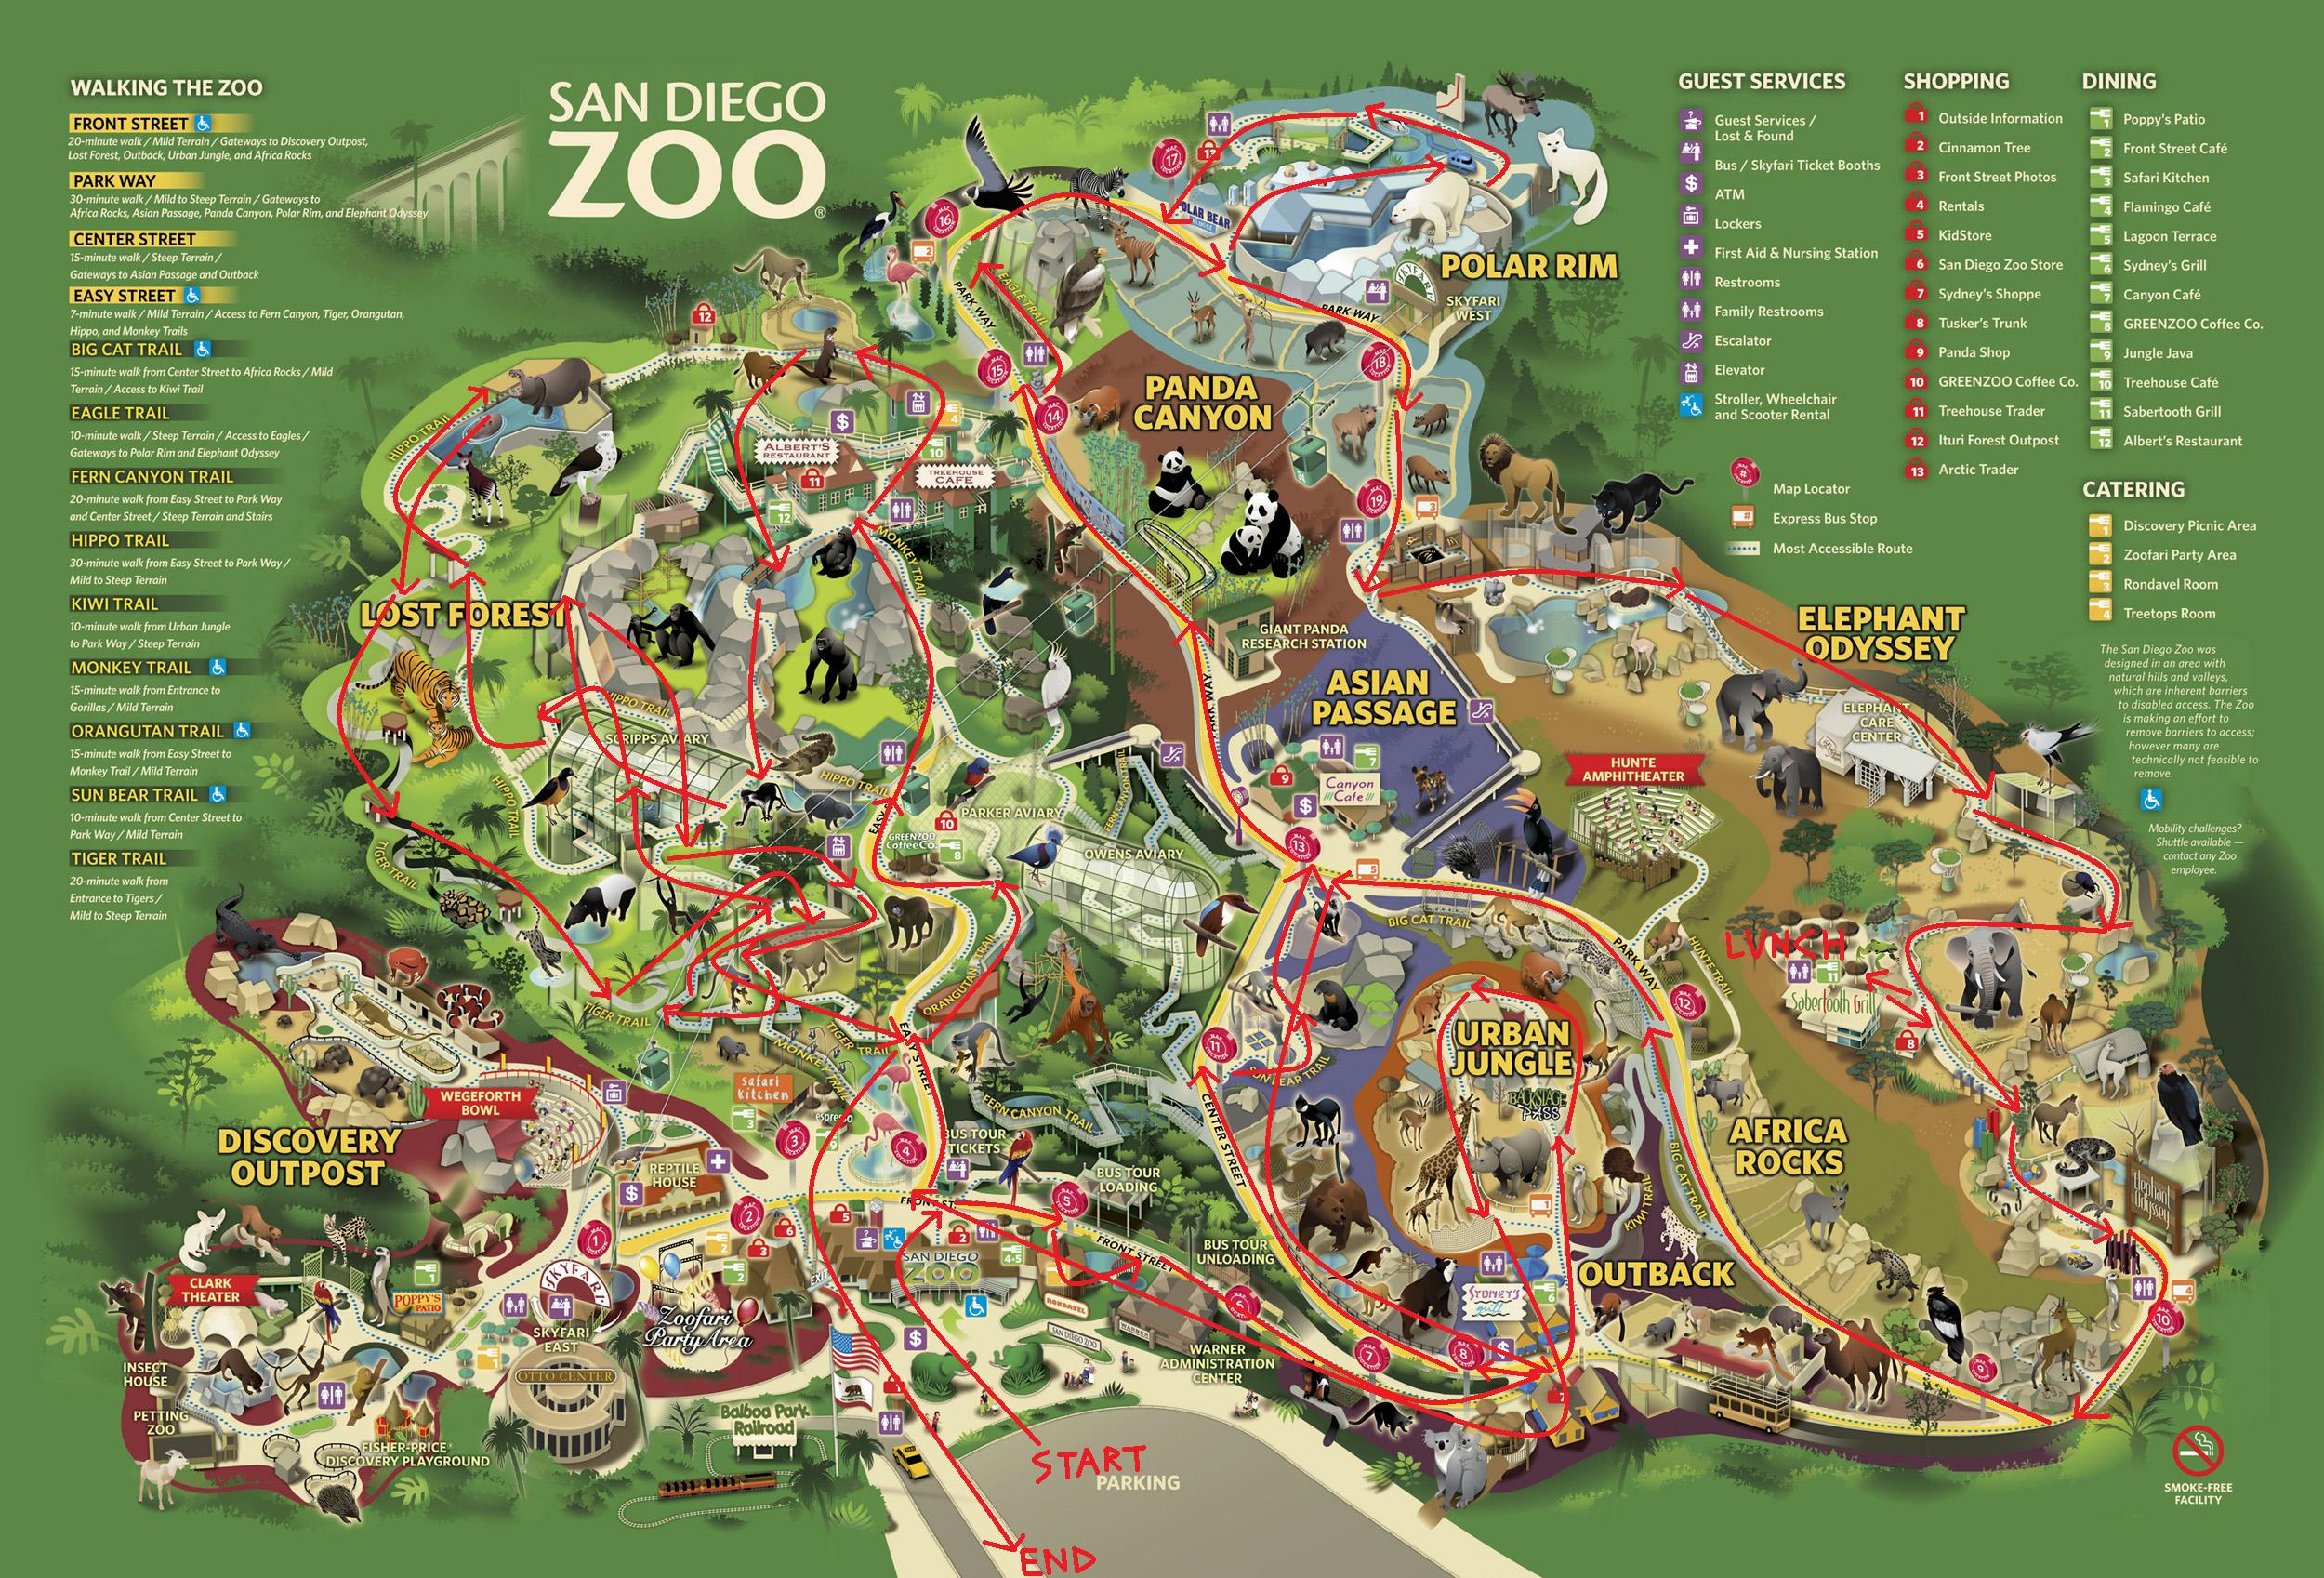 San diego zoo safari park discount coupons